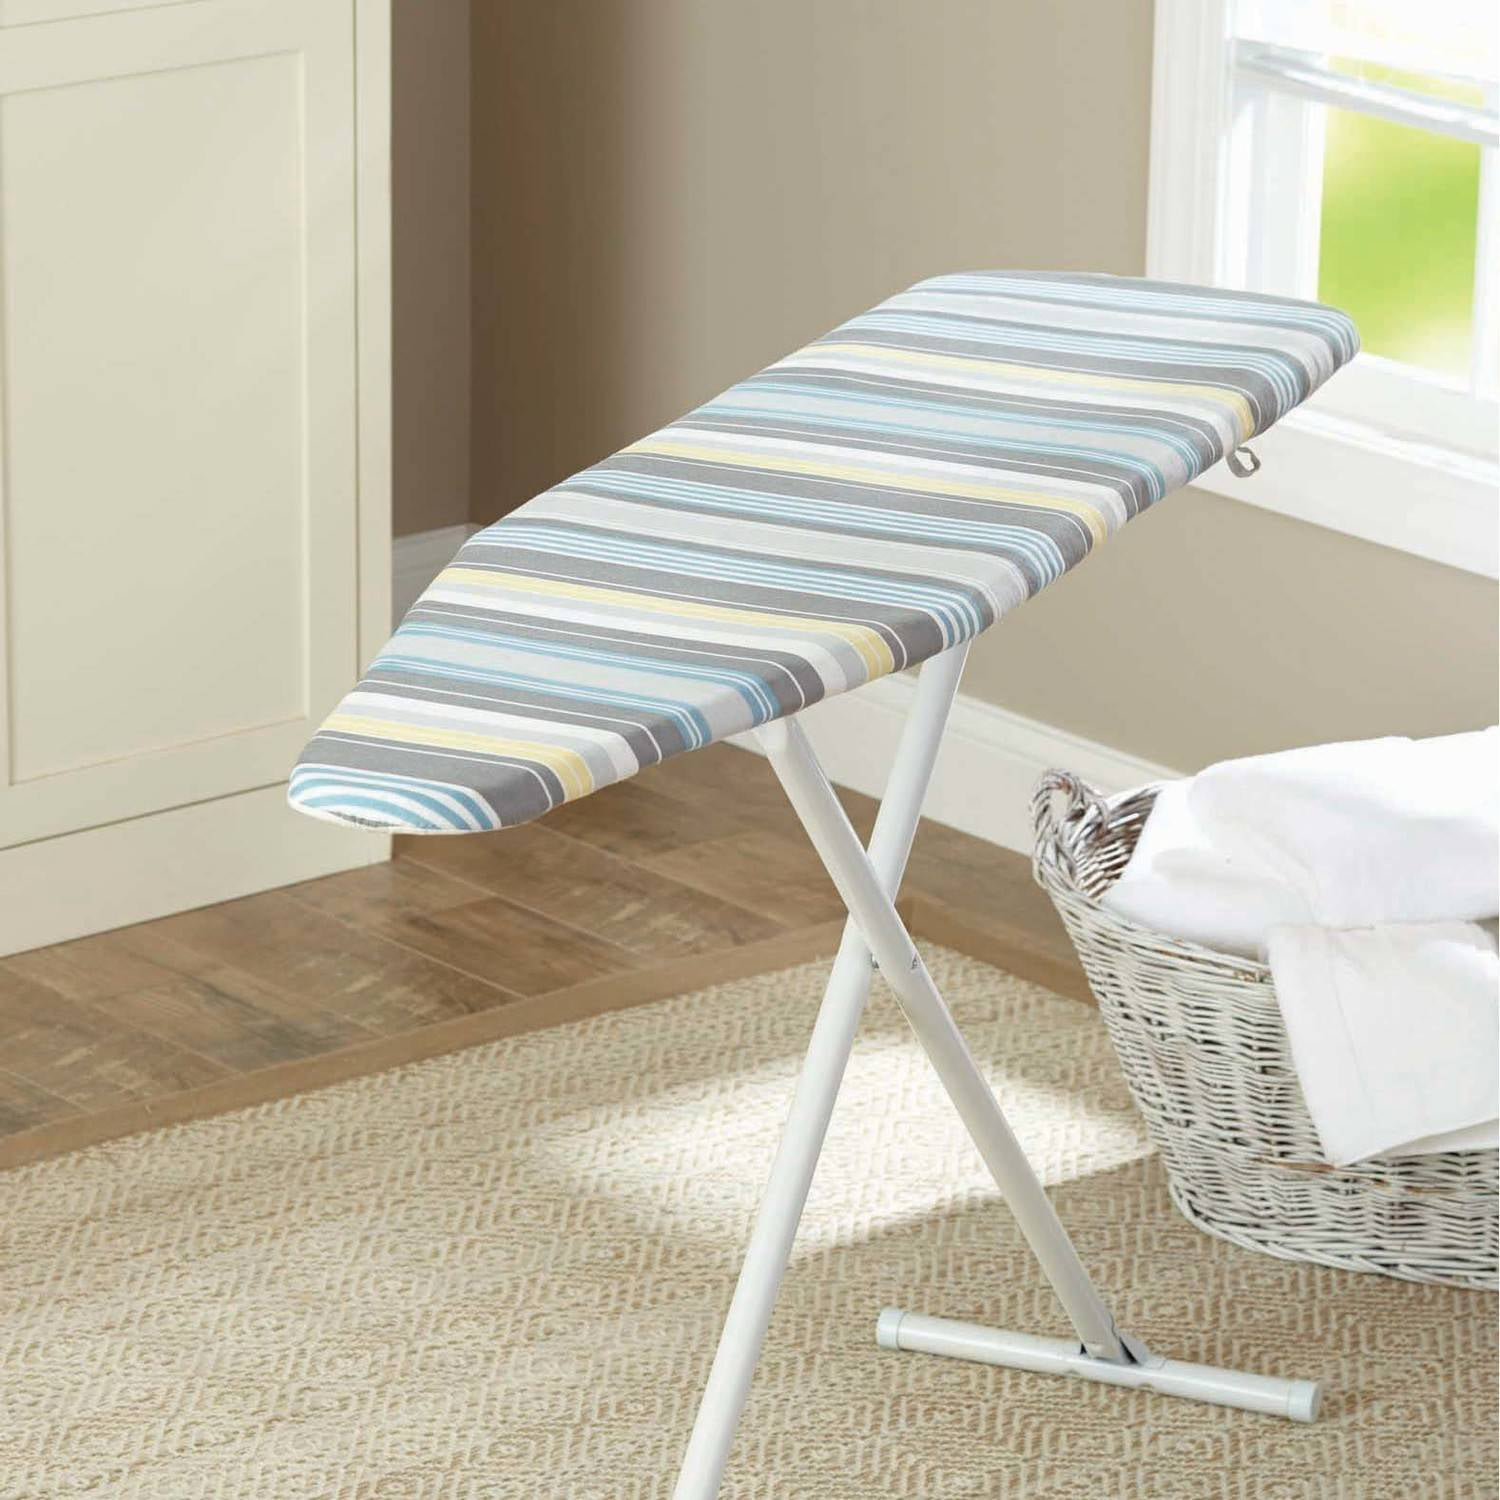 Better Homes and Gardens Reversible Ironing Board Pad and Cover, Casual Stripe by